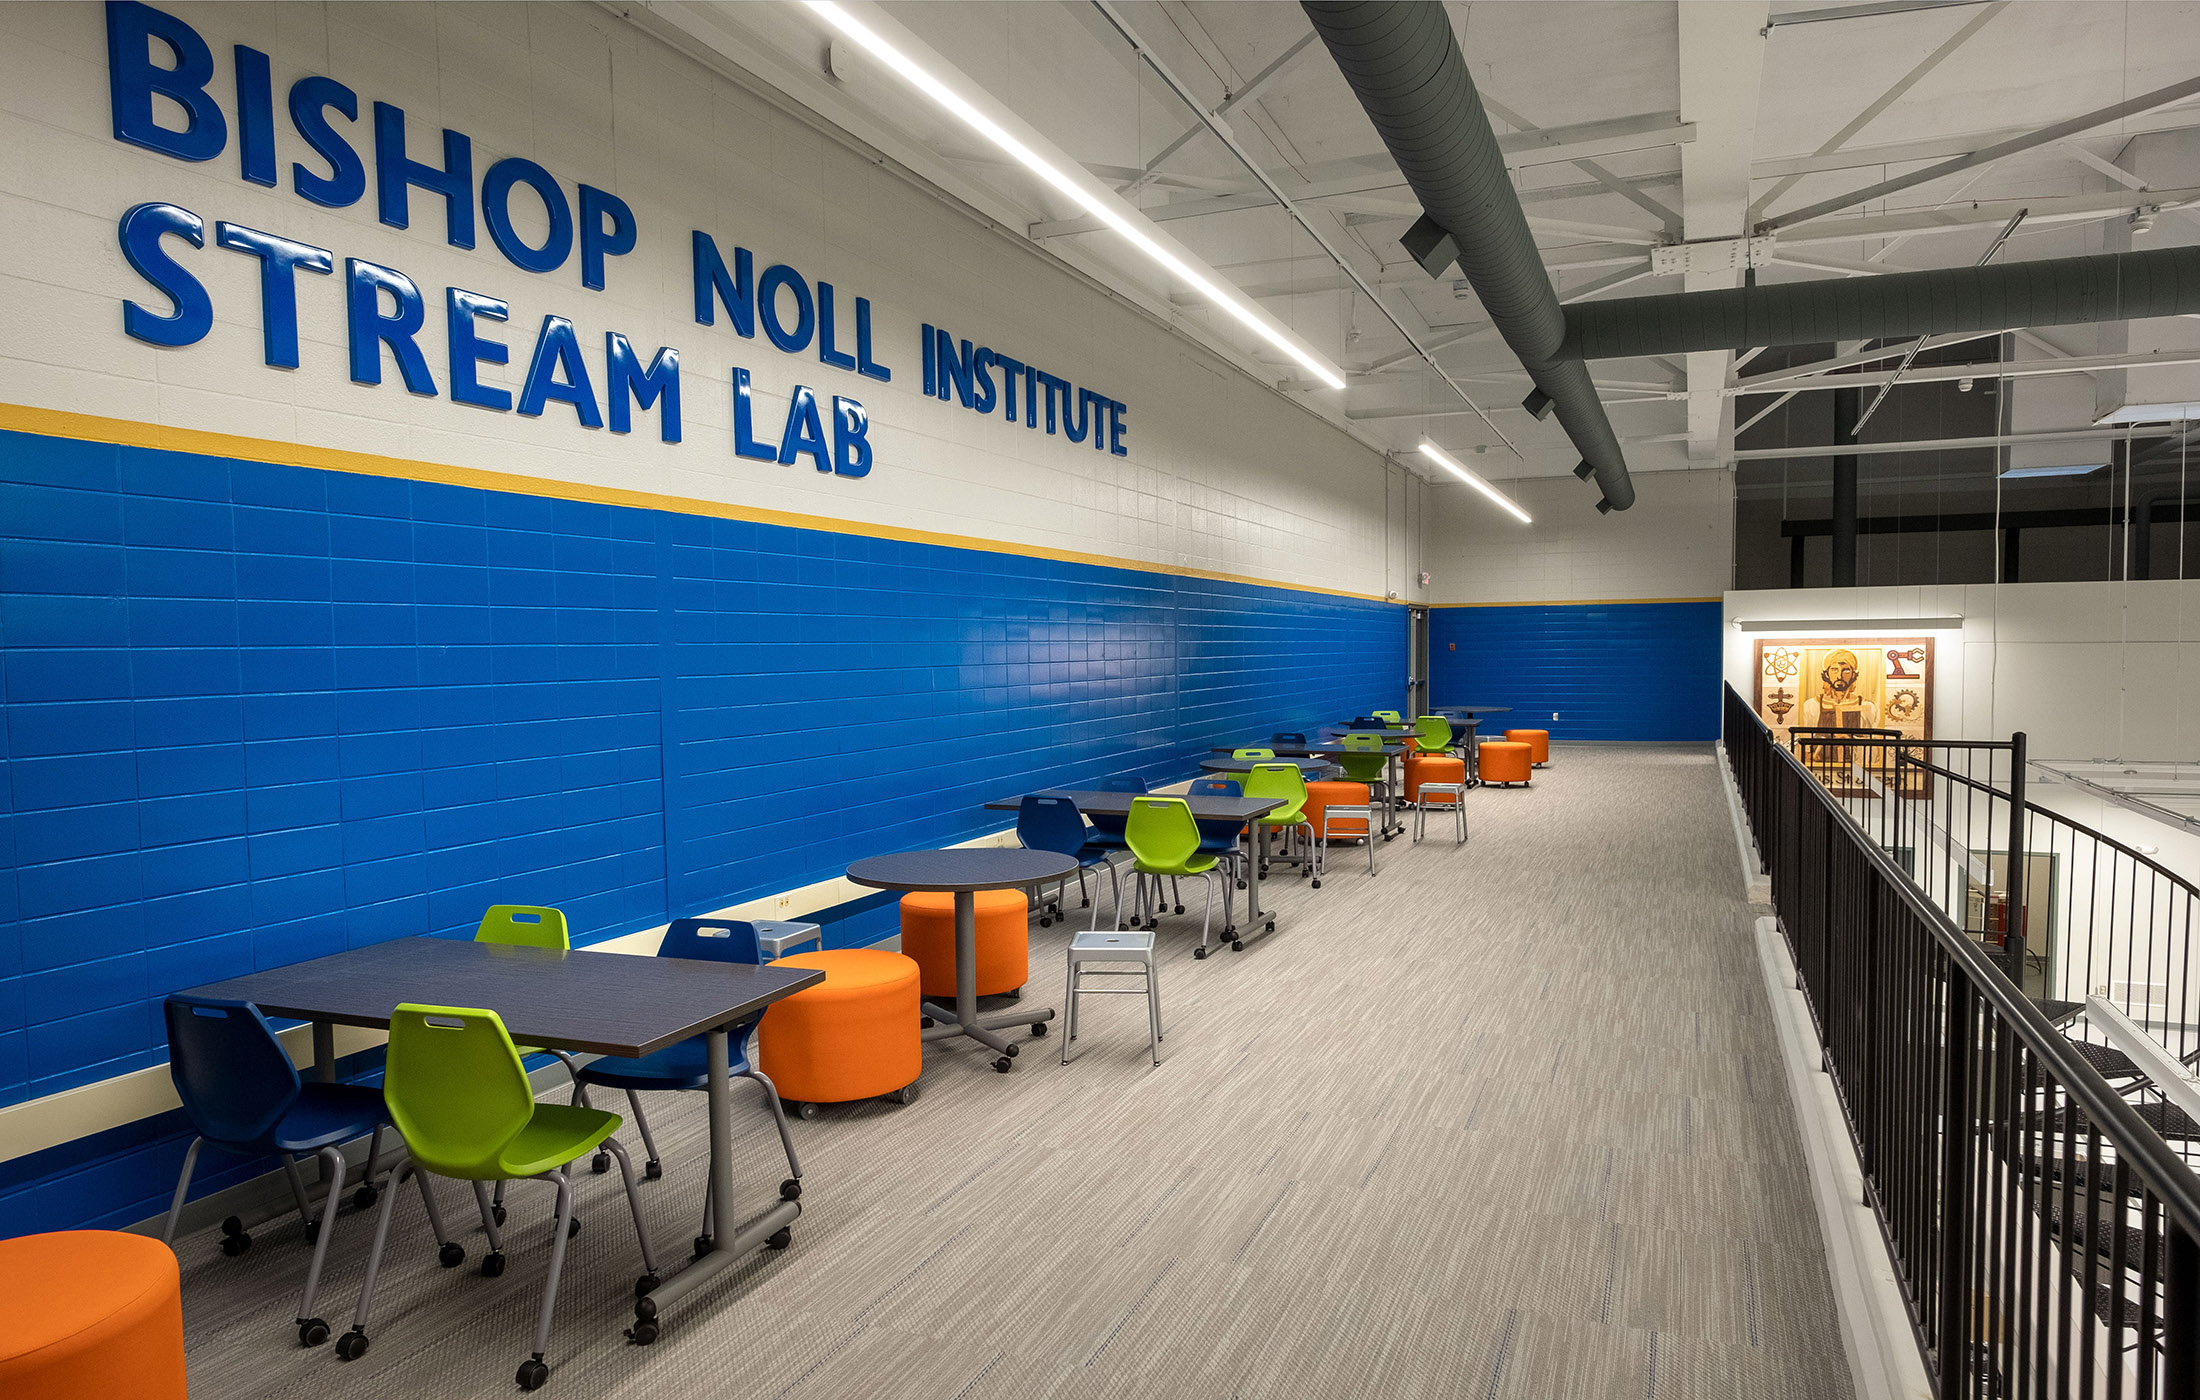 Bishop Noll STREAM Lab Chairs